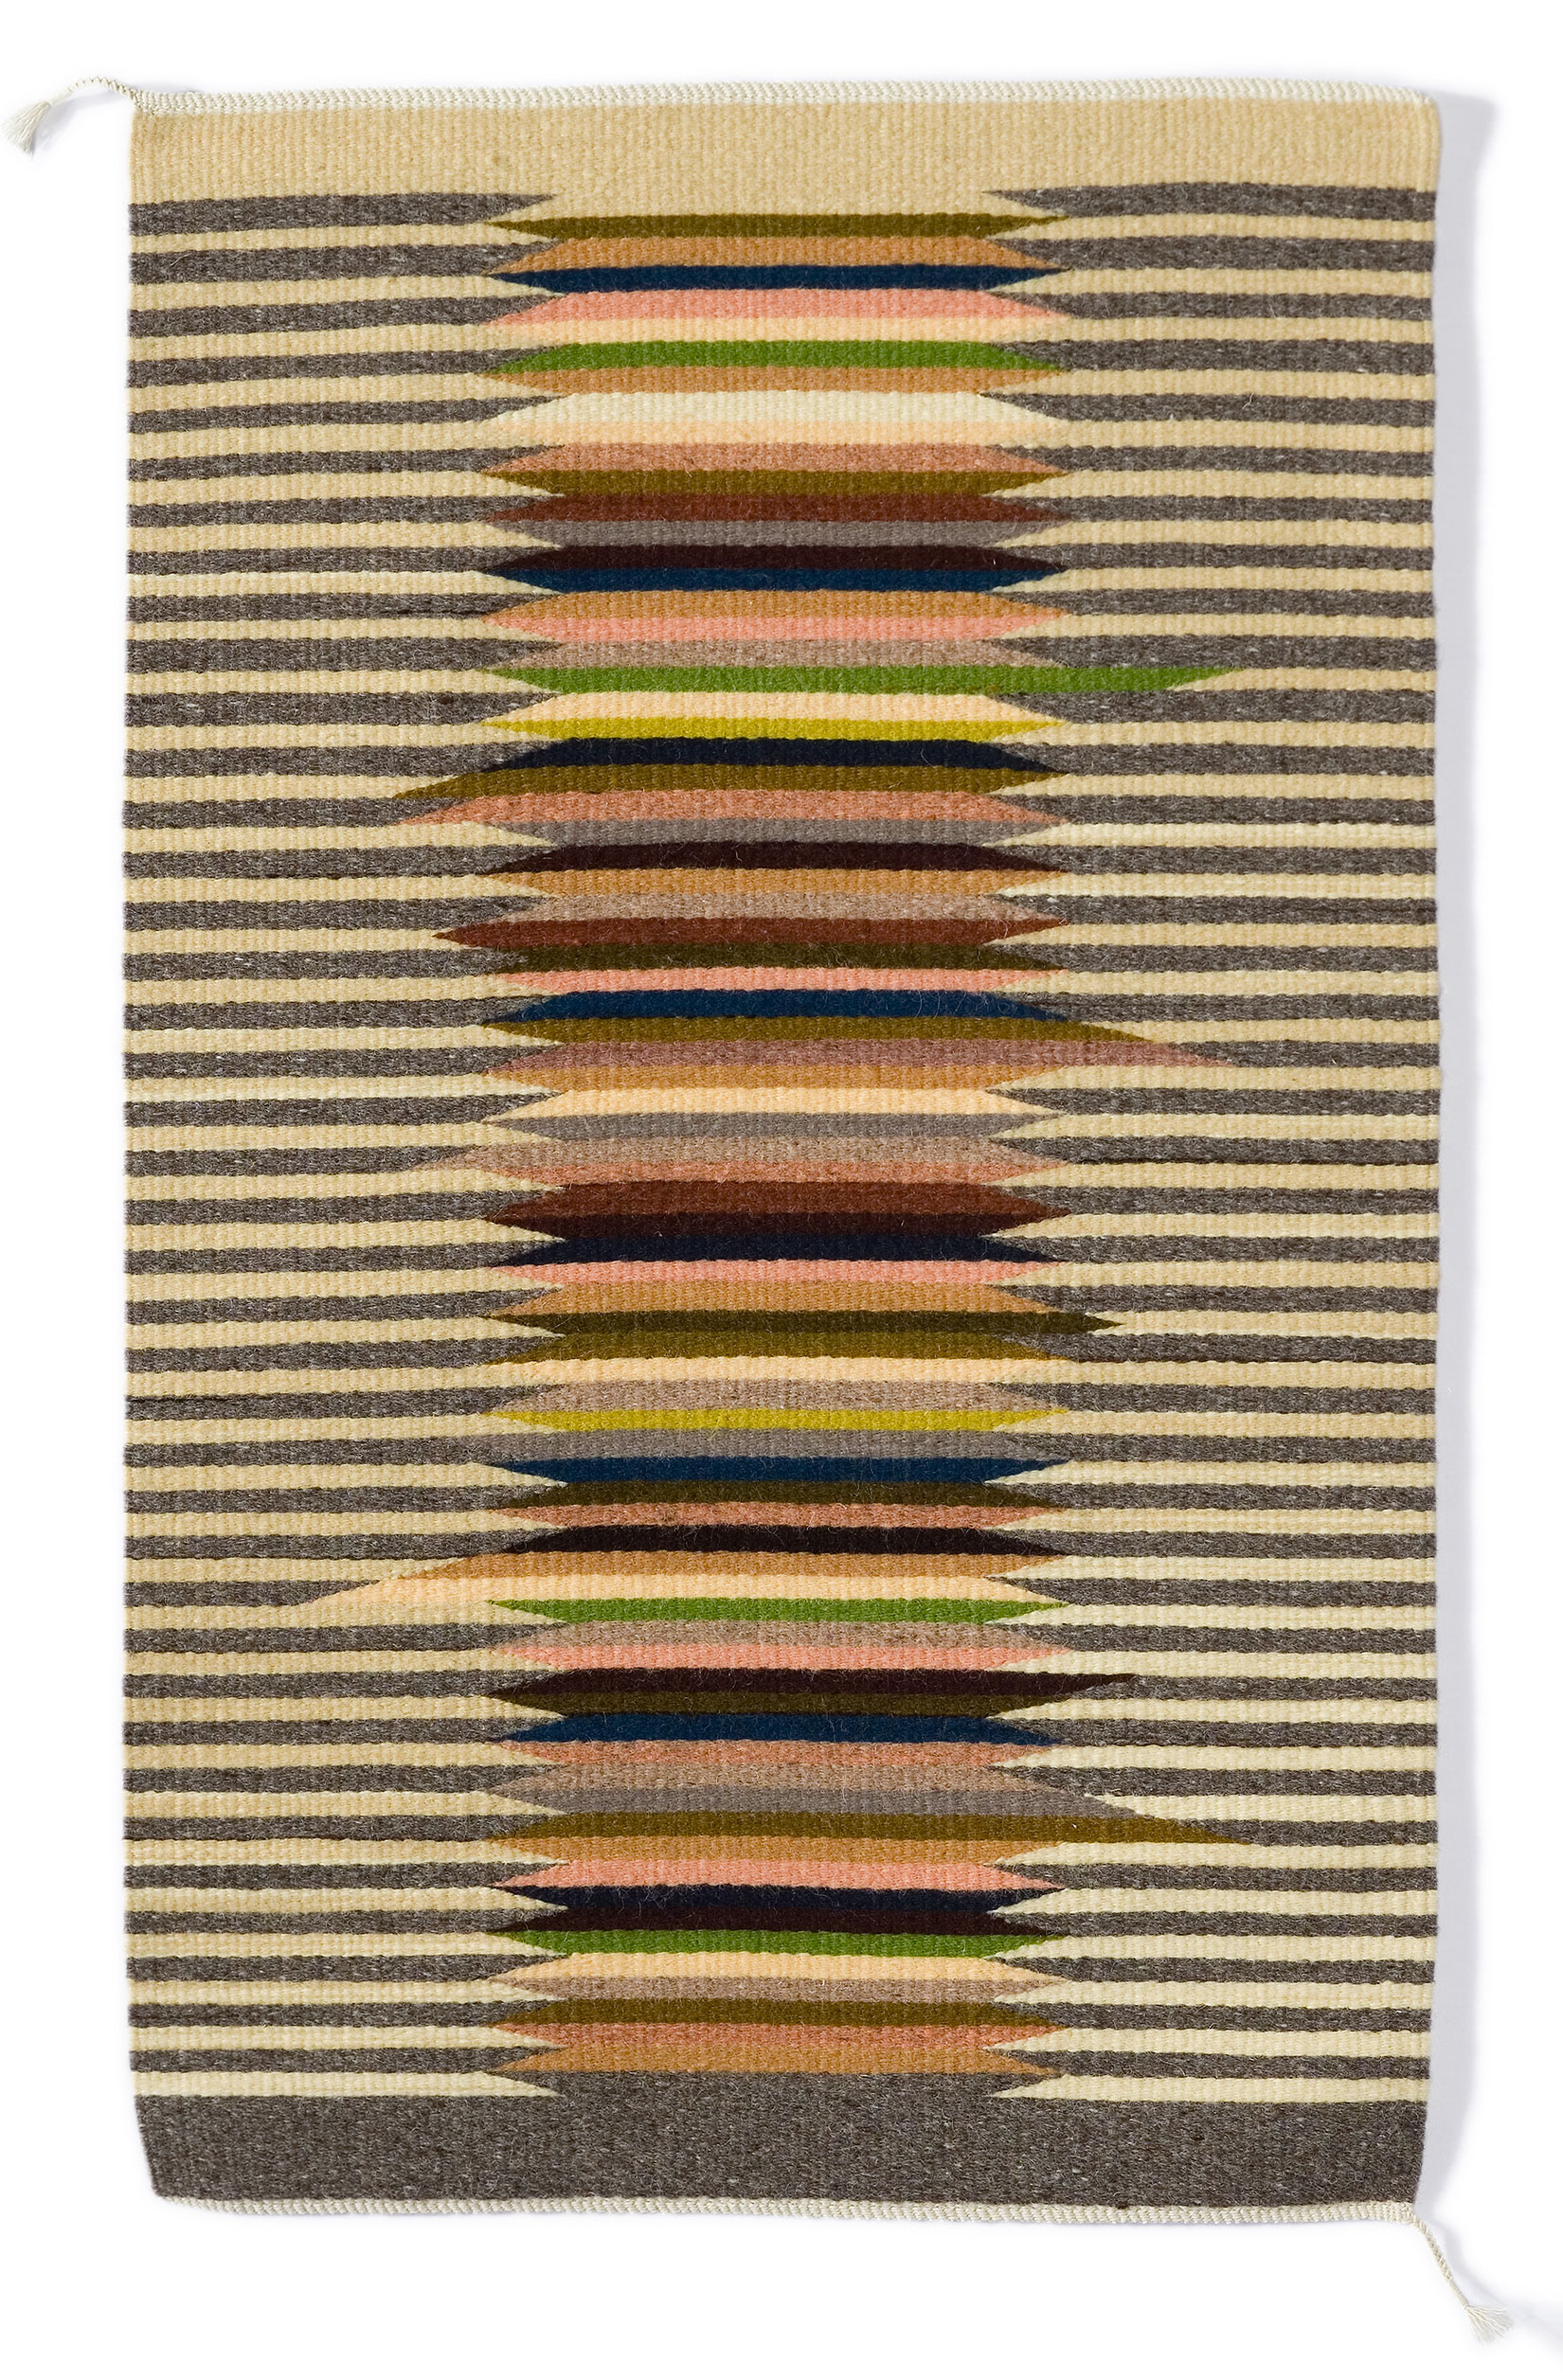 Regina Design Frequency rug